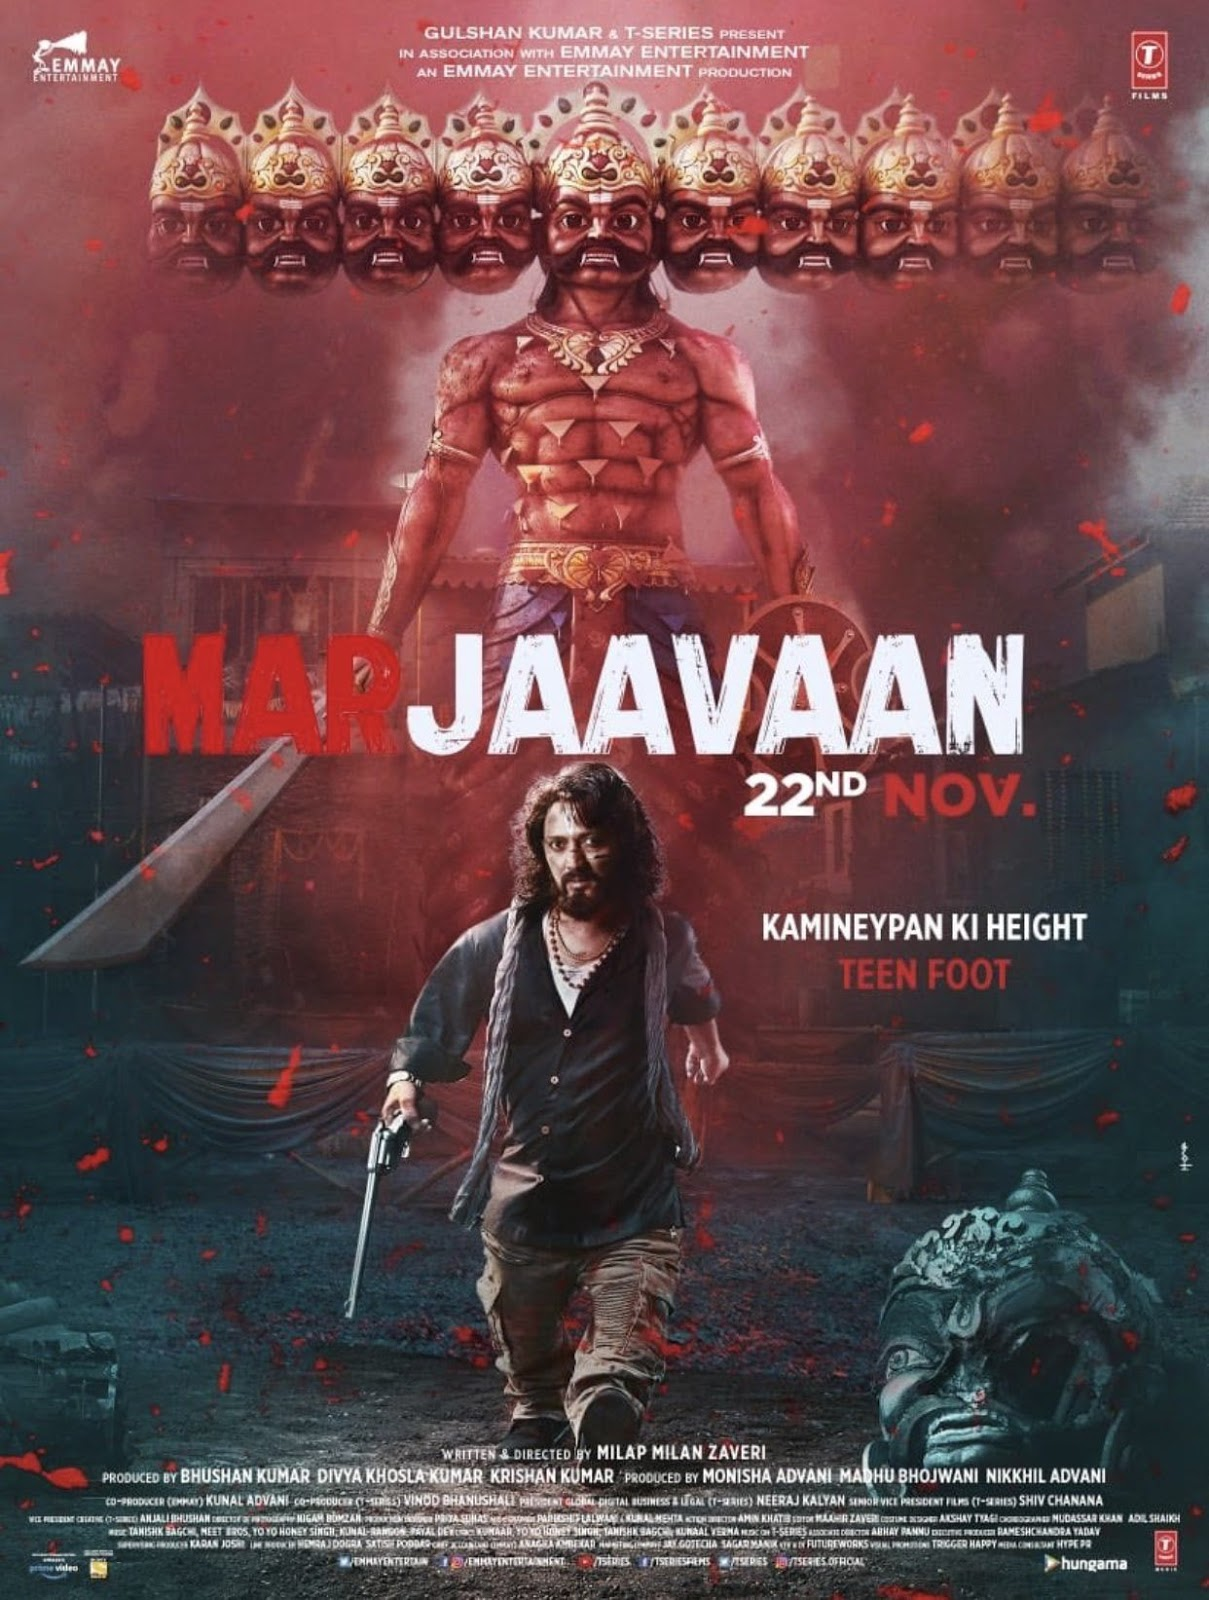 Mar Jaavaan (2019) First Look Poster